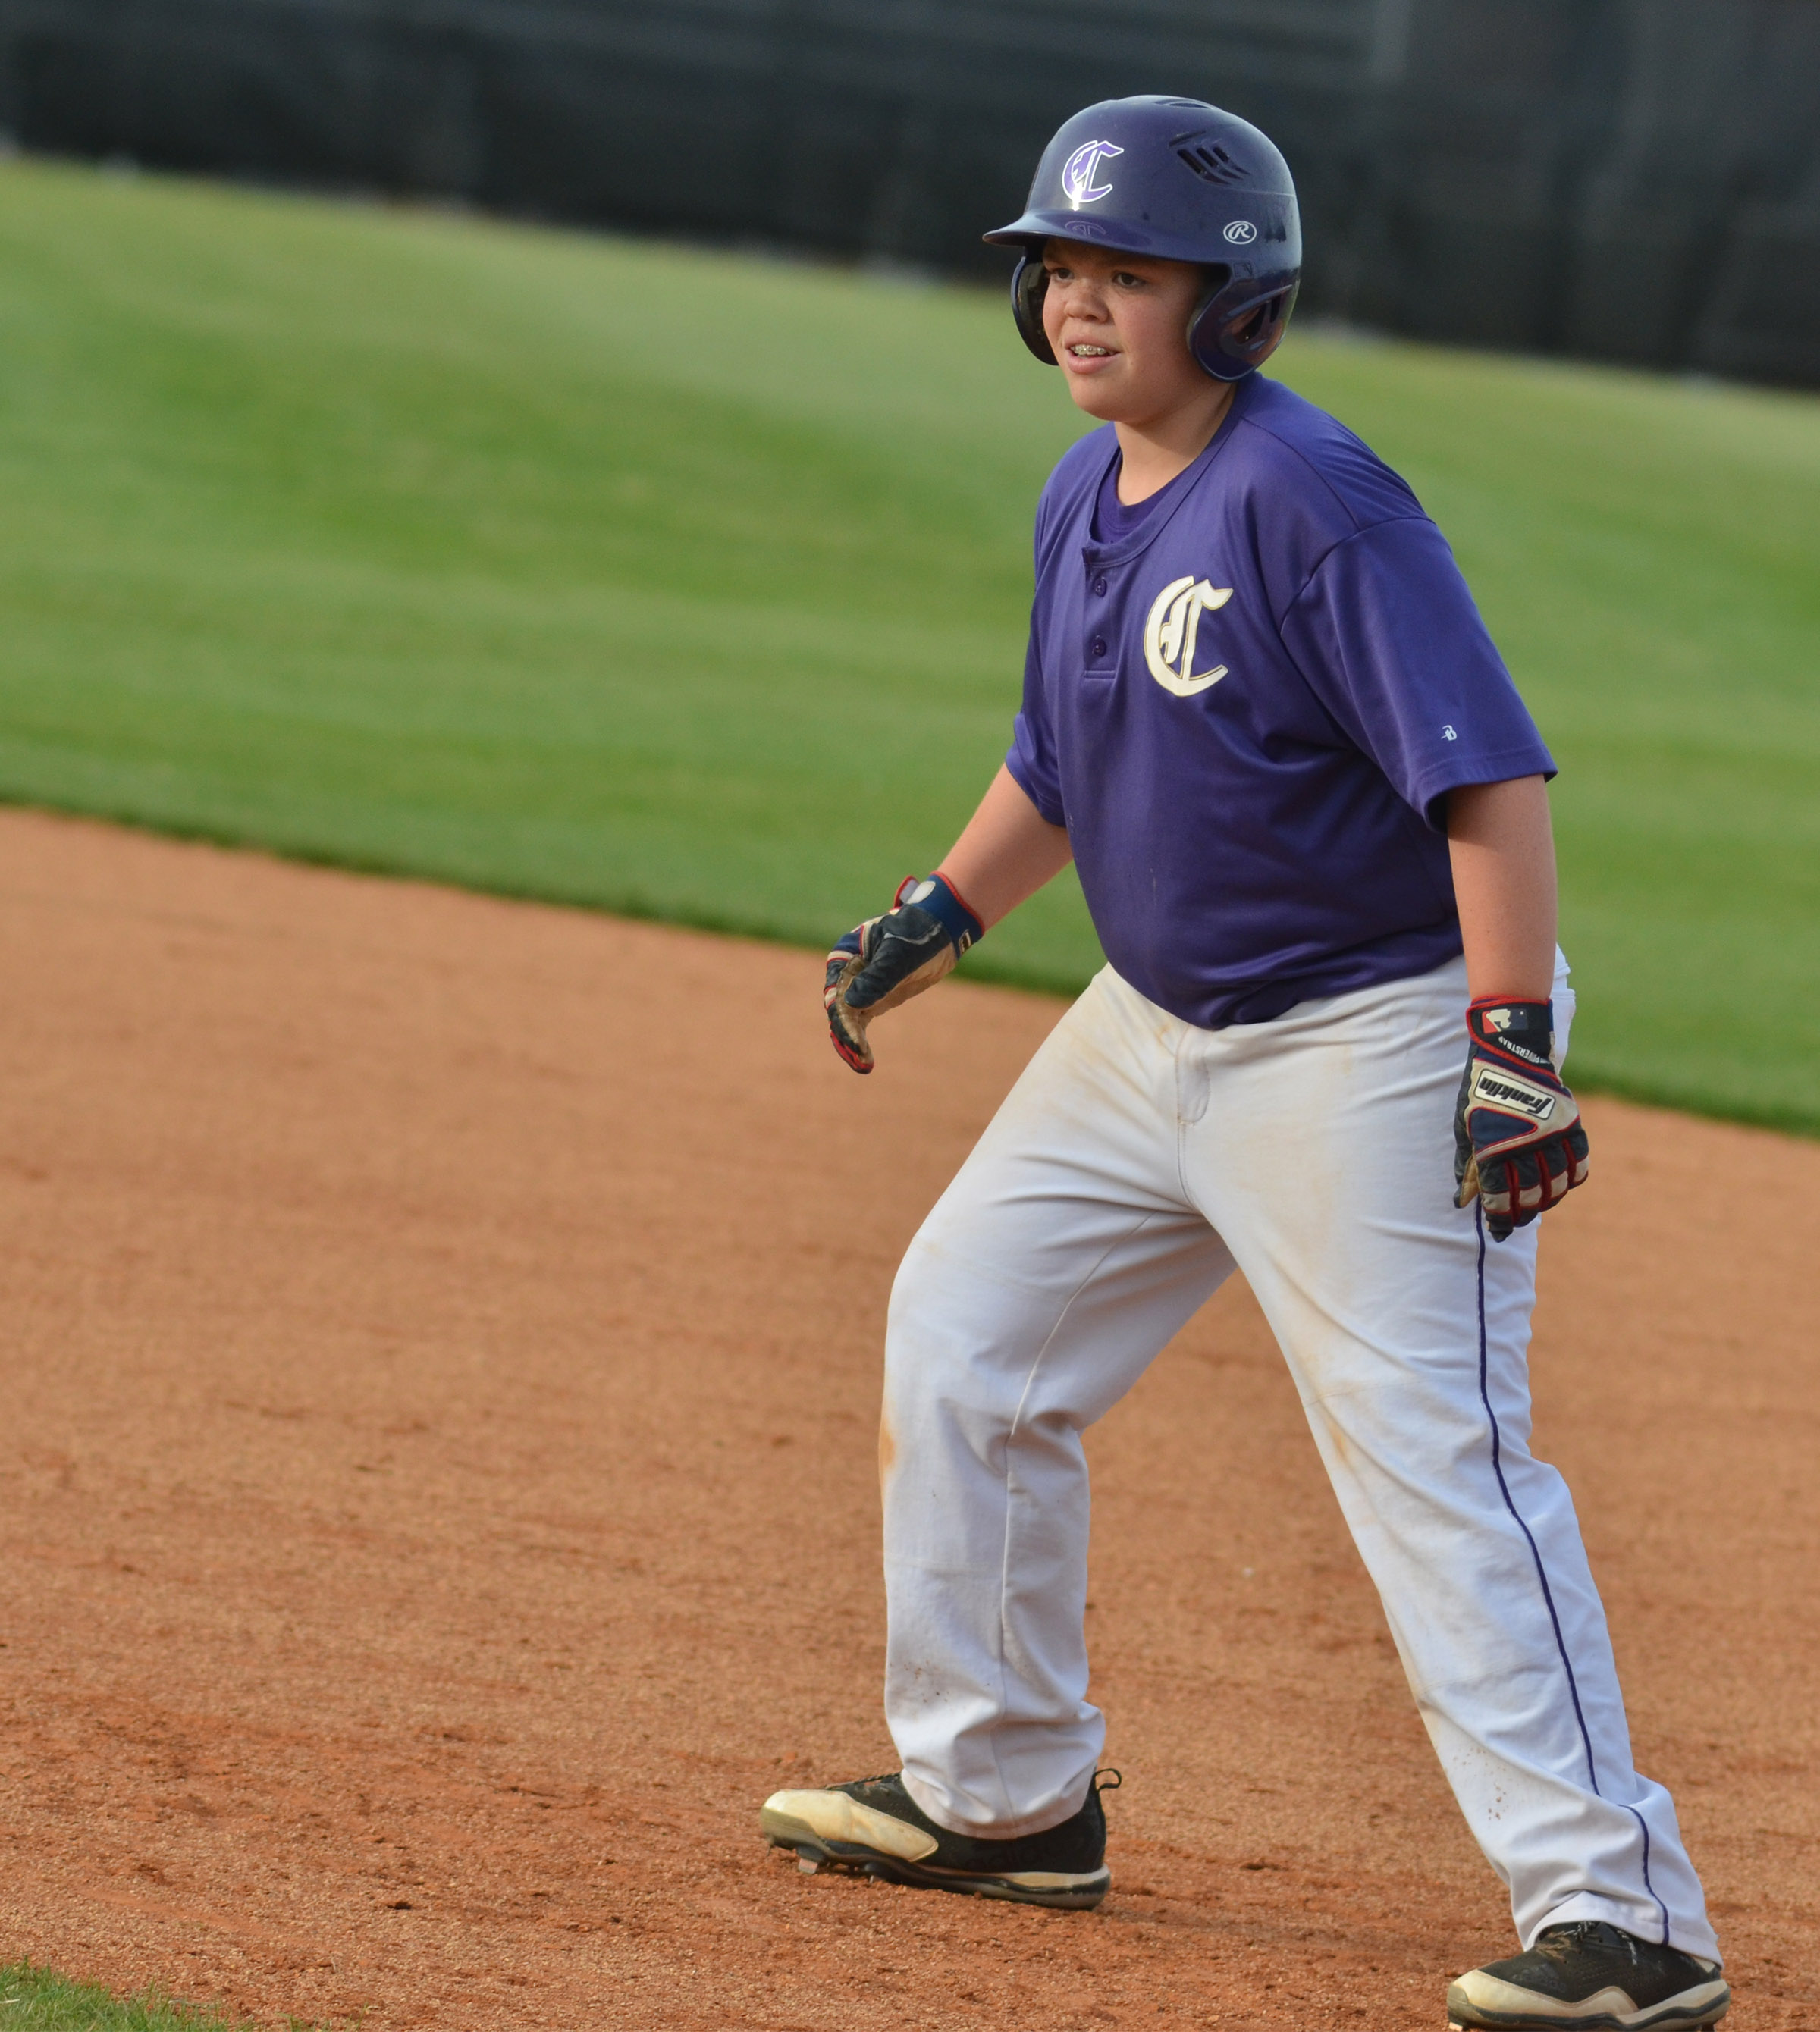 CMS sixth-grader Hayden Jones smiles as he nears second base.